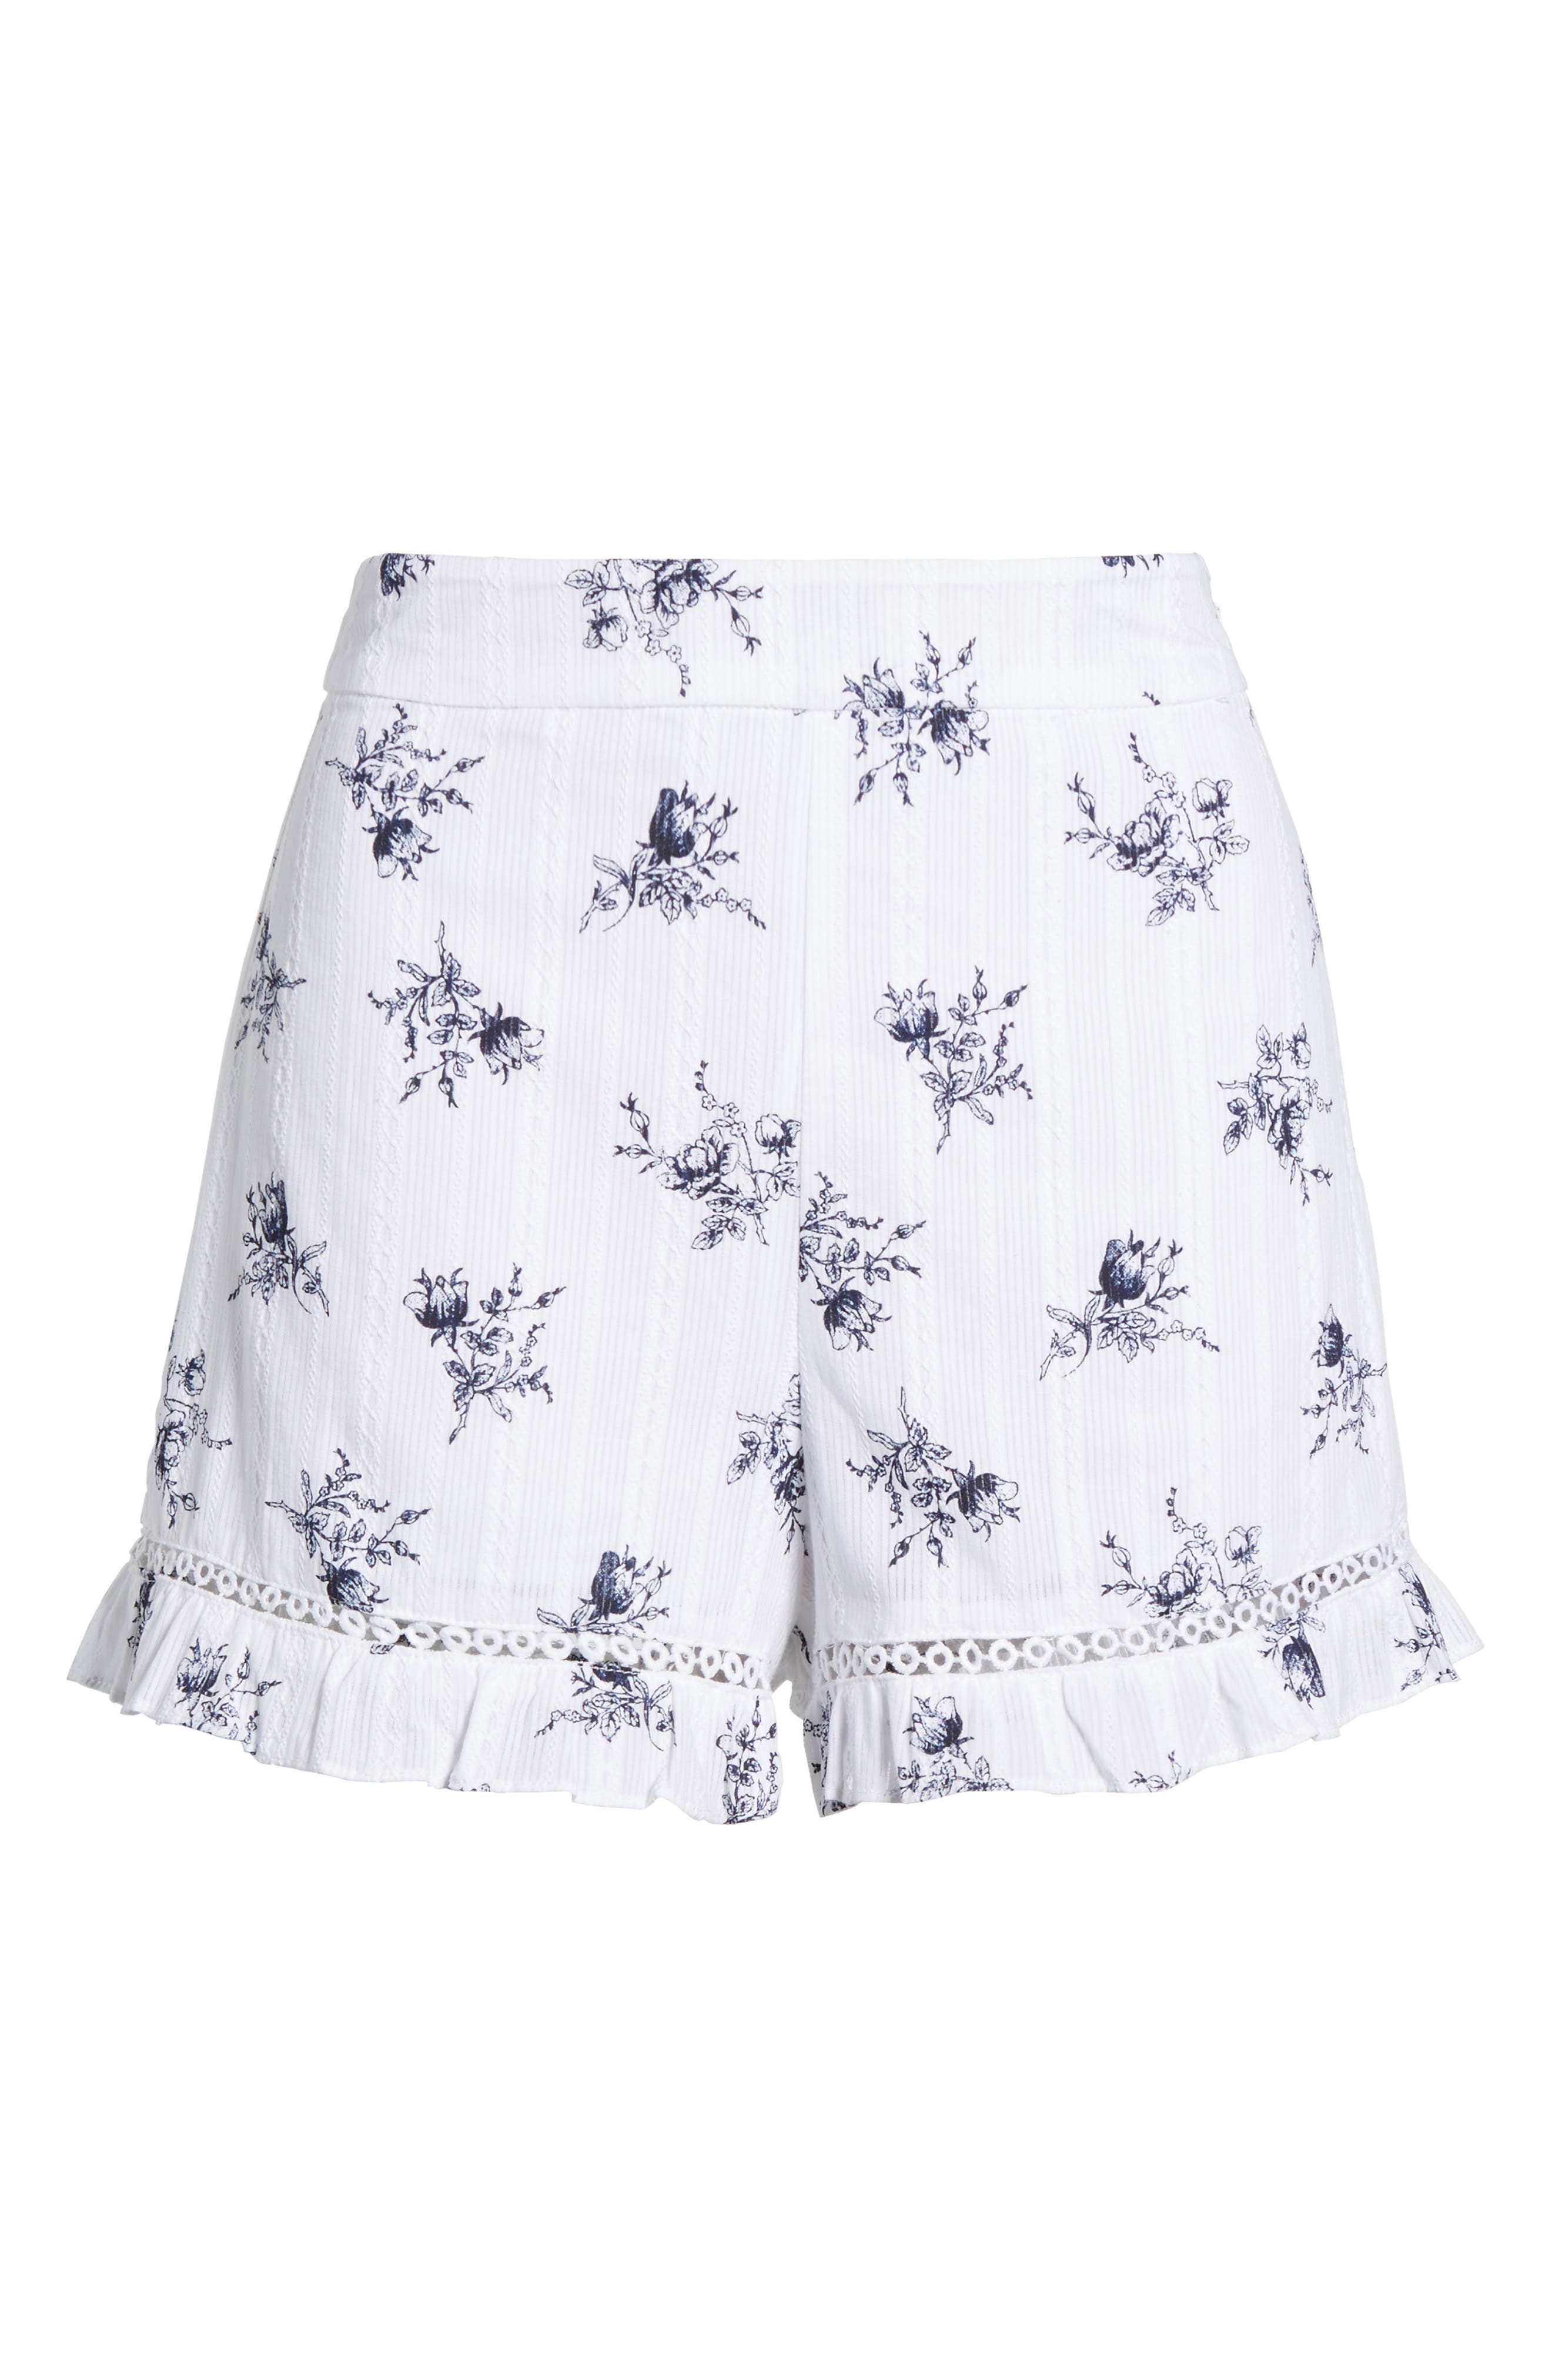 Ruffle Shorts,                             Alternate thumbnail 8, color,                             White/ Navy